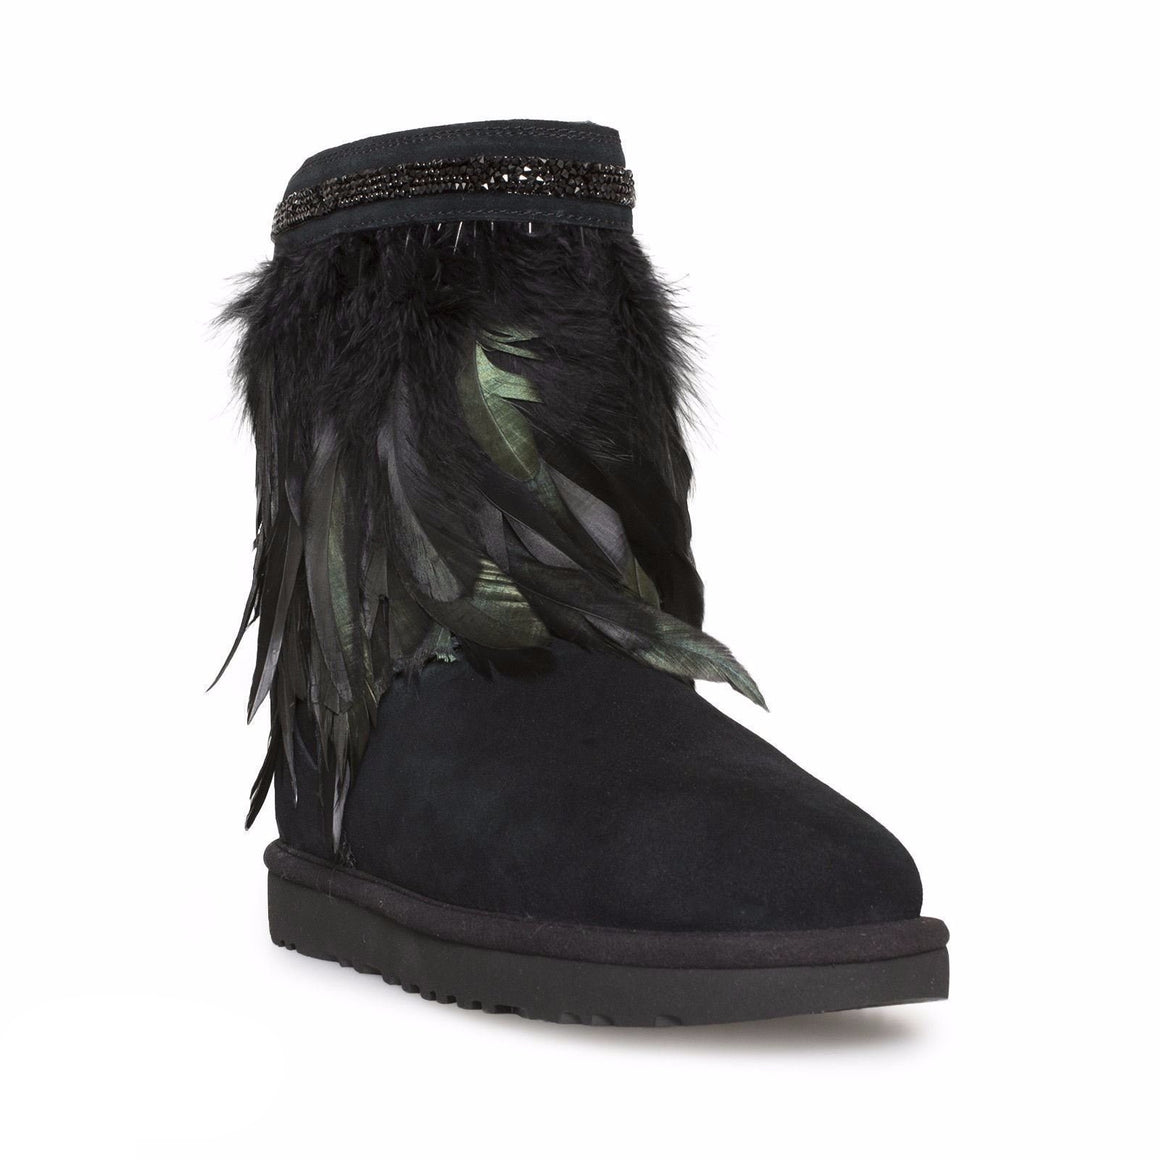 UGG Classic Short Peacock Black Boots